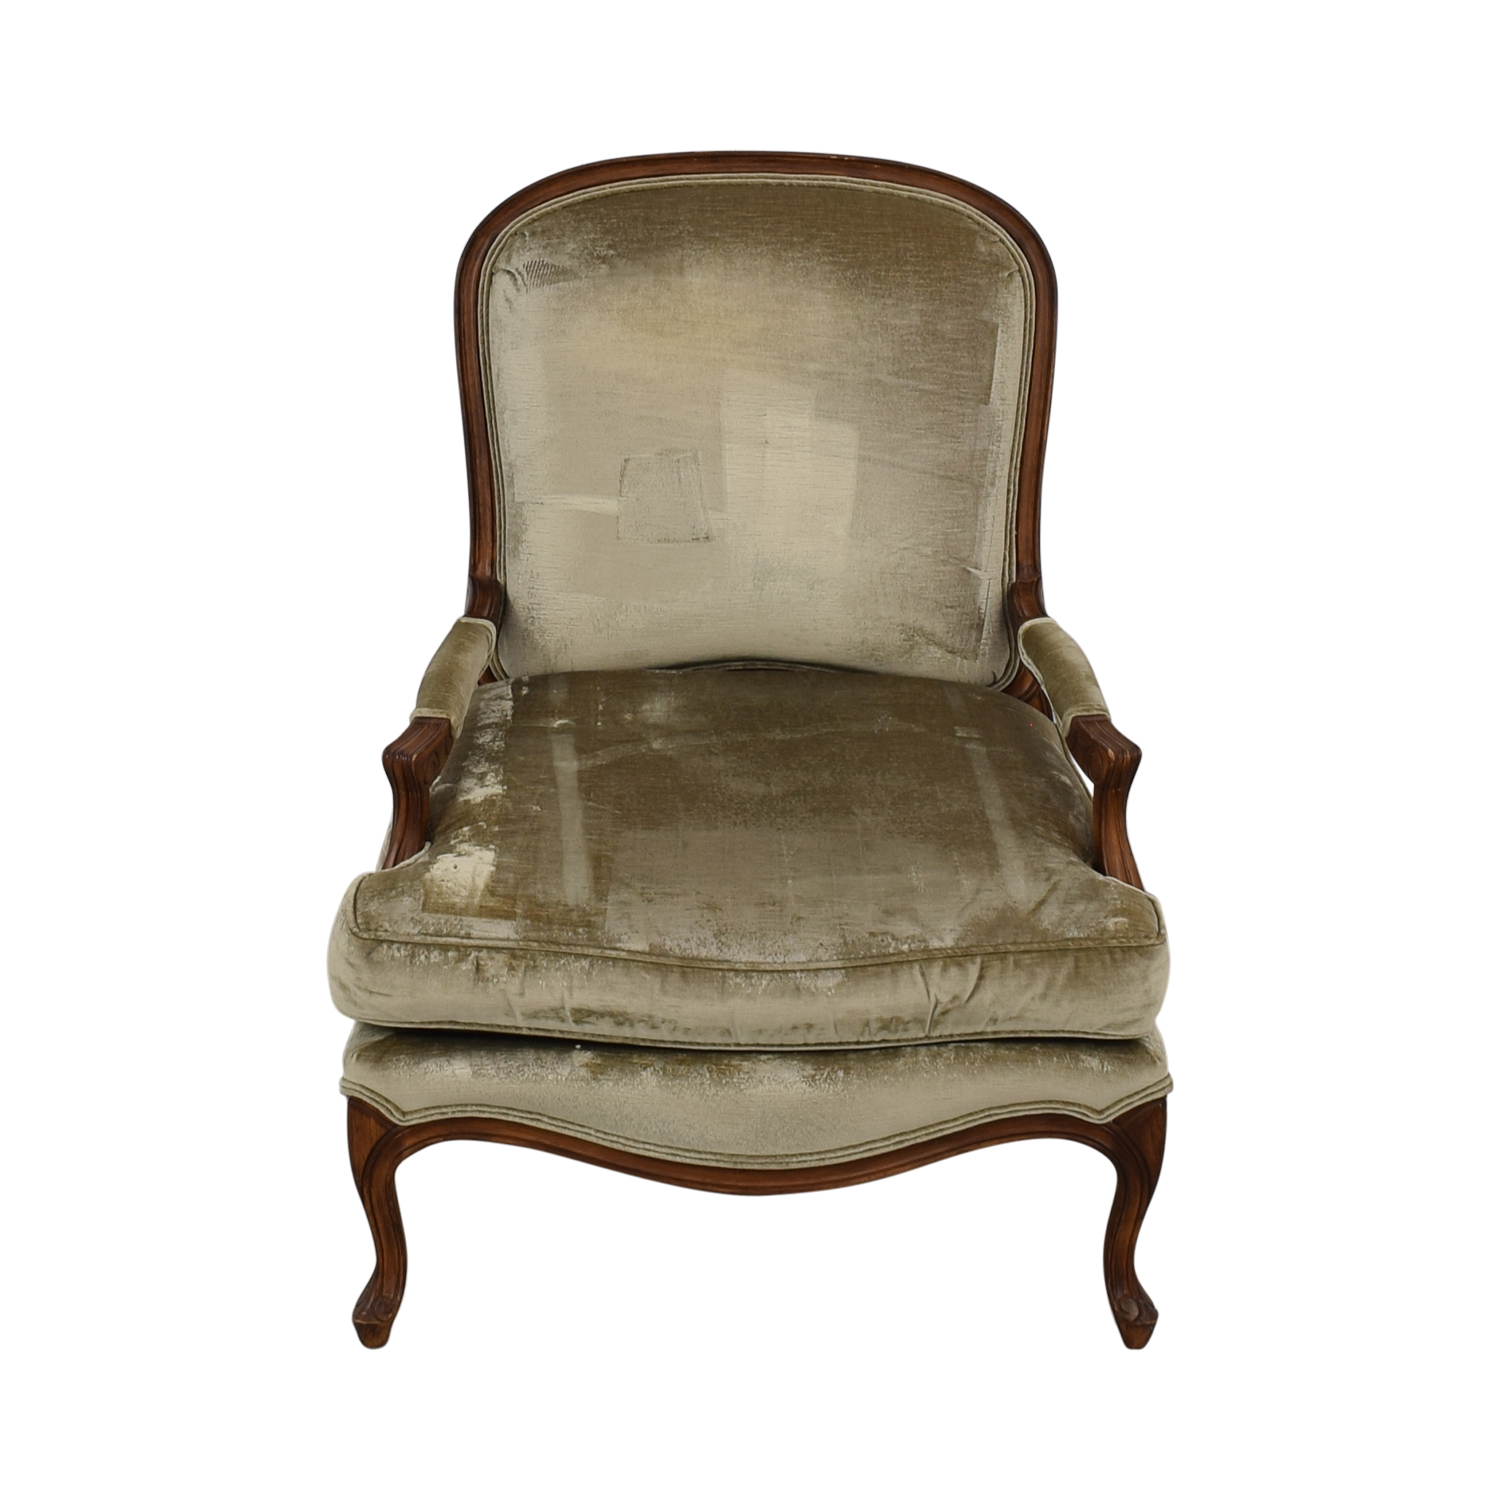 Drexel Heritage Drexel Heritage Country French Accent Chair for sale